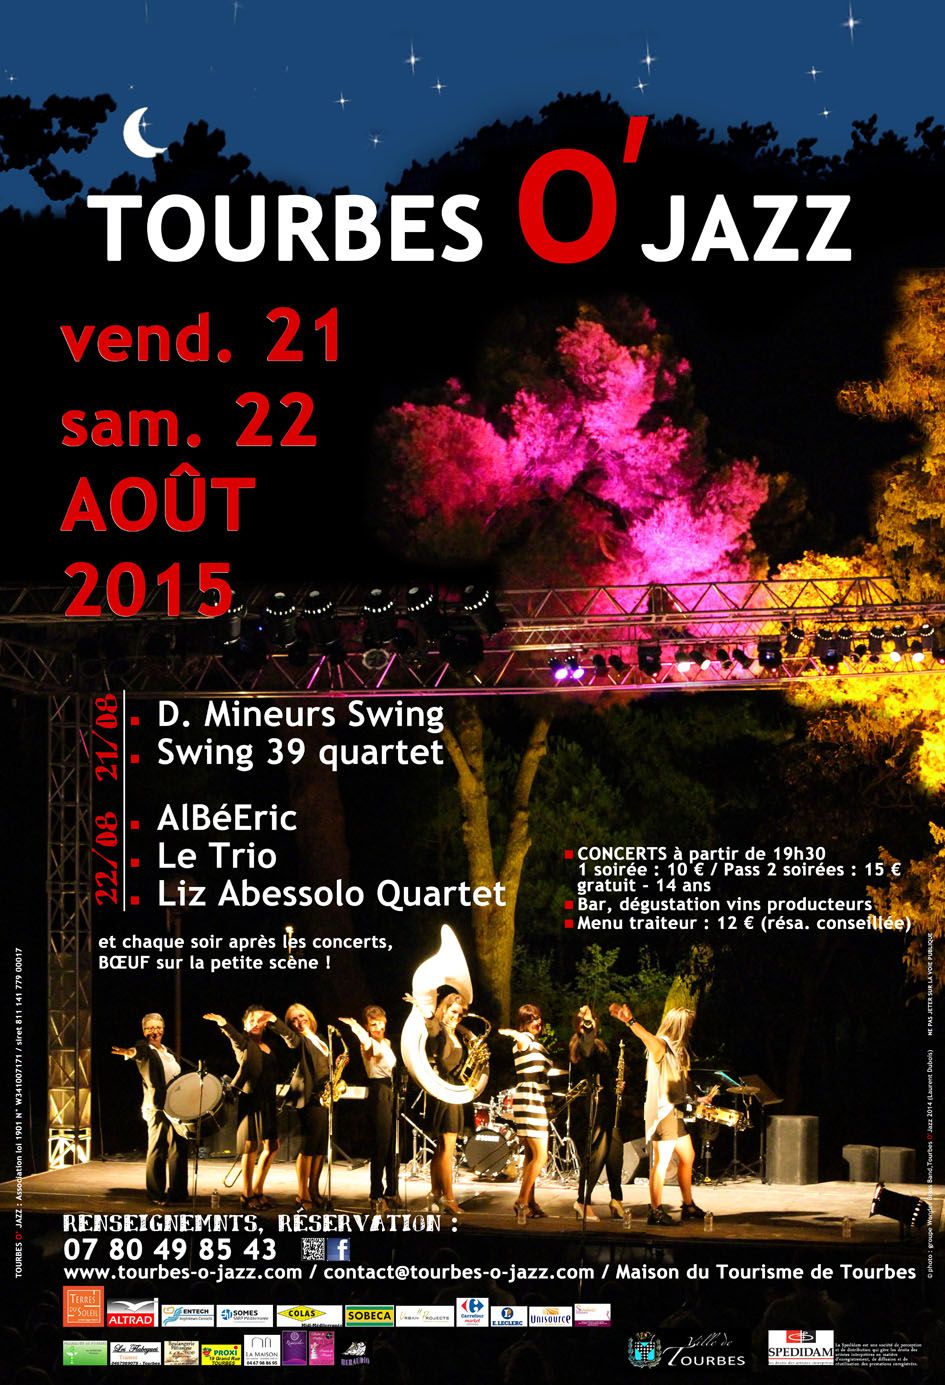 affiche TOURBES O JAZZ 2015 internet